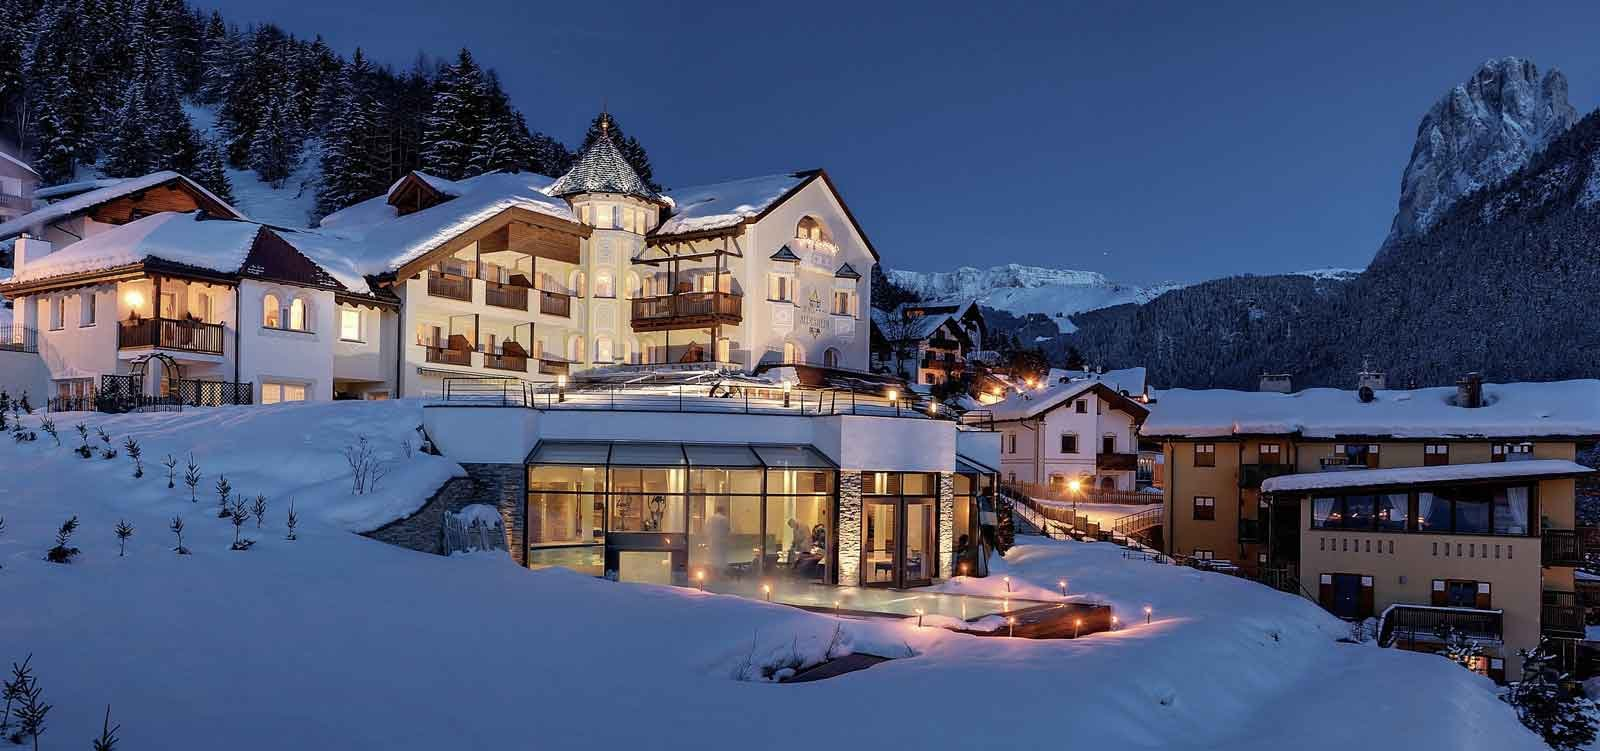 Alpenheim charming hotel spa wellness hotel with for Charming hotels